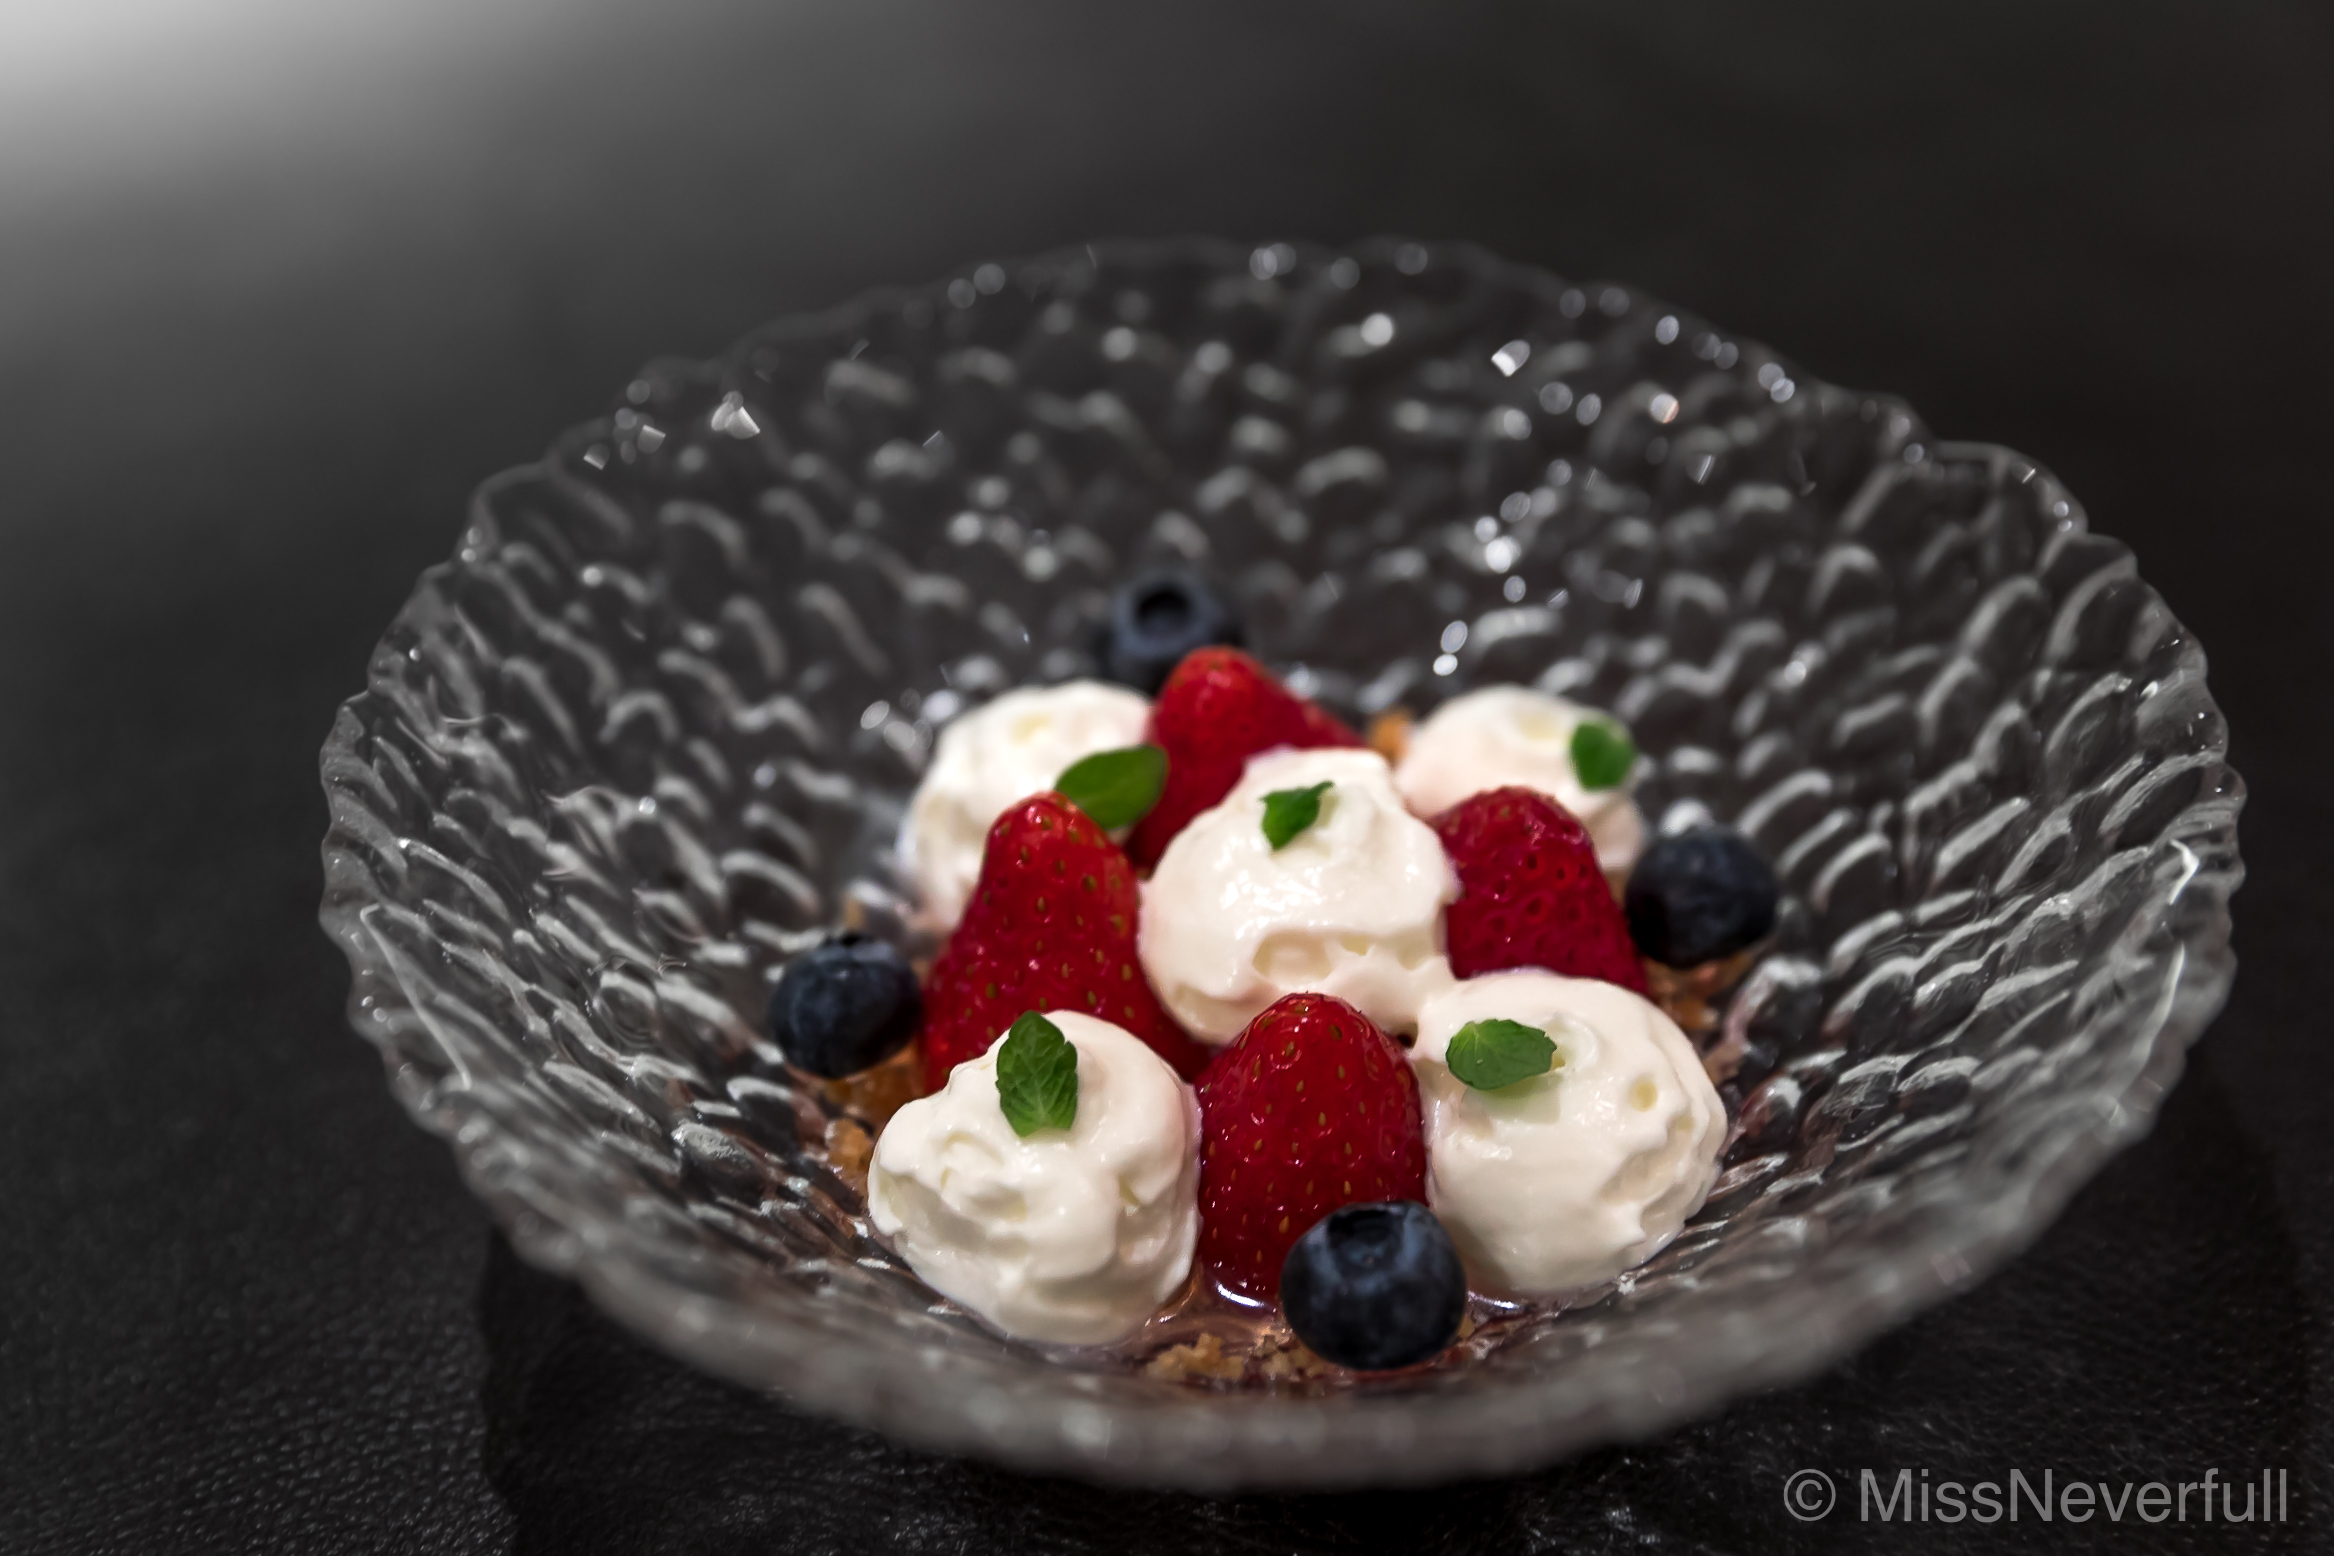 6. Dessert: Vinegar flavored strawberries, Idiazabal cheese mousse